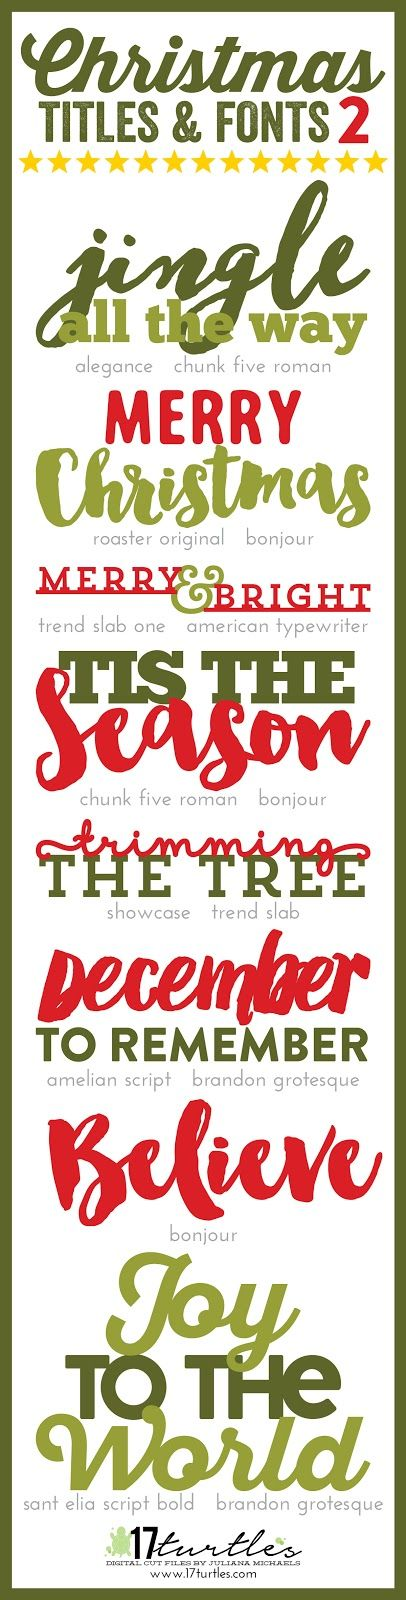 Christmas Titles and Fonts 2 by Juliana Michaels 17turtles.com ...